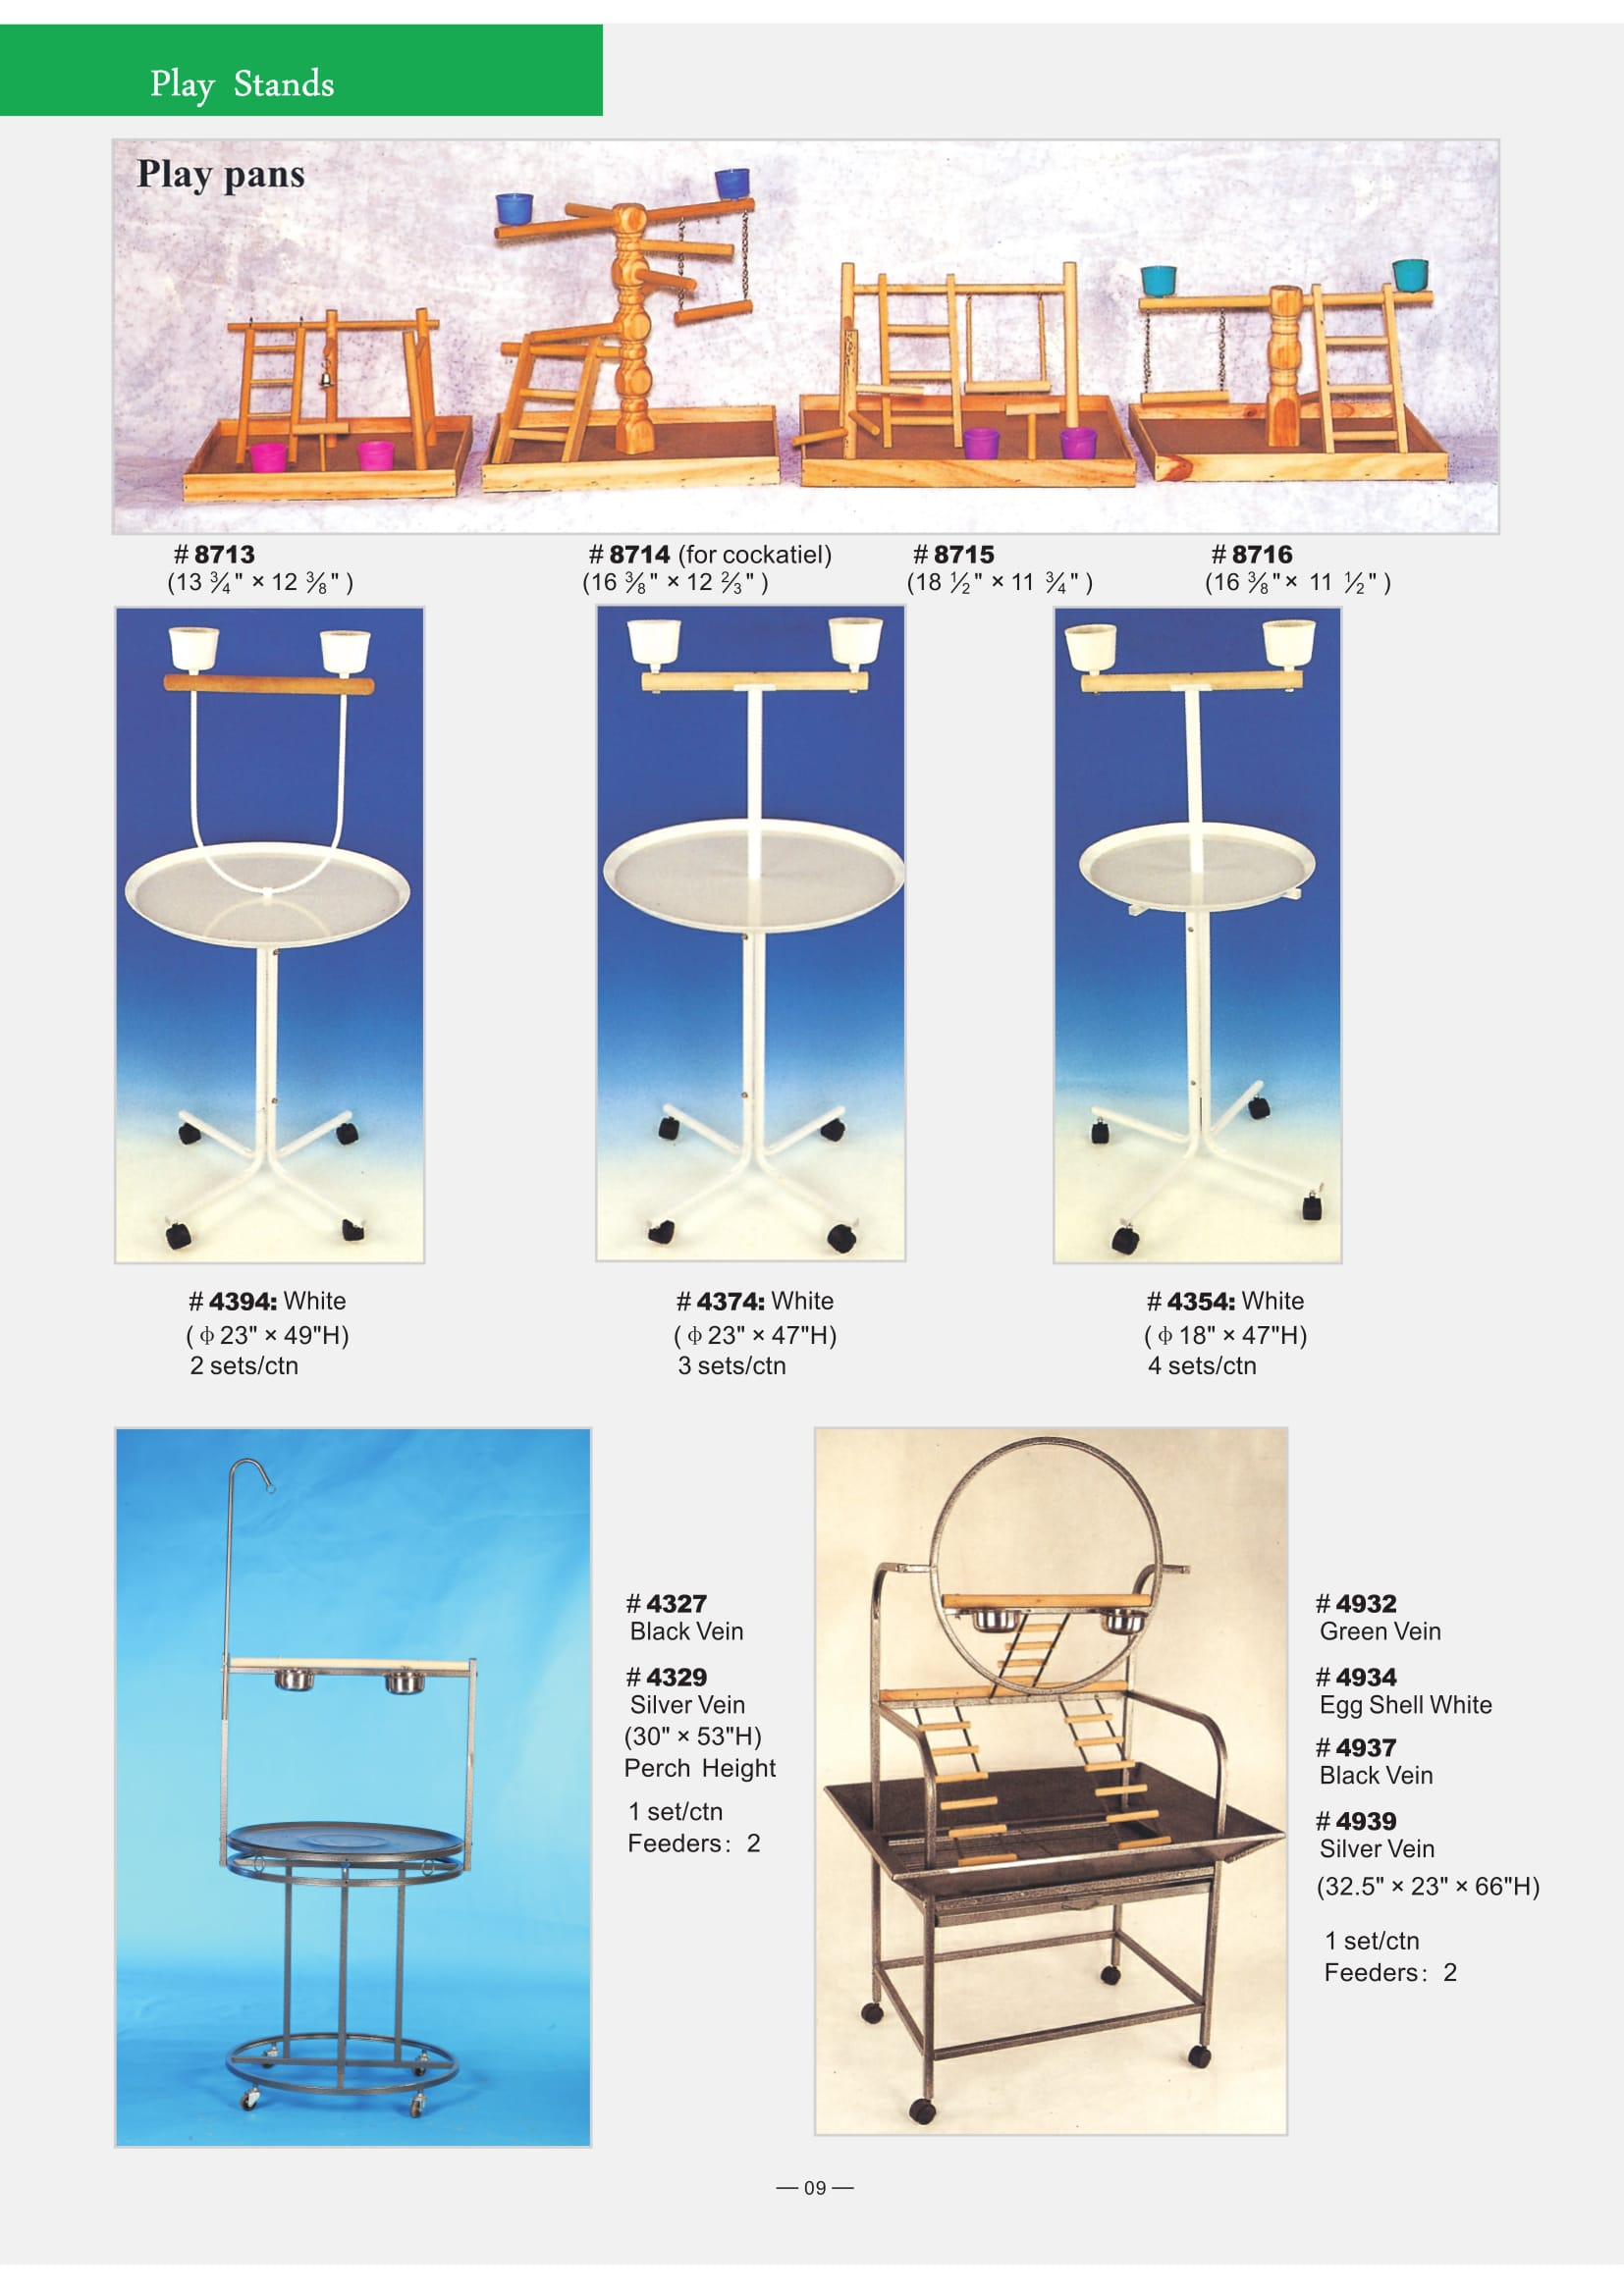 4. Play Stands-1